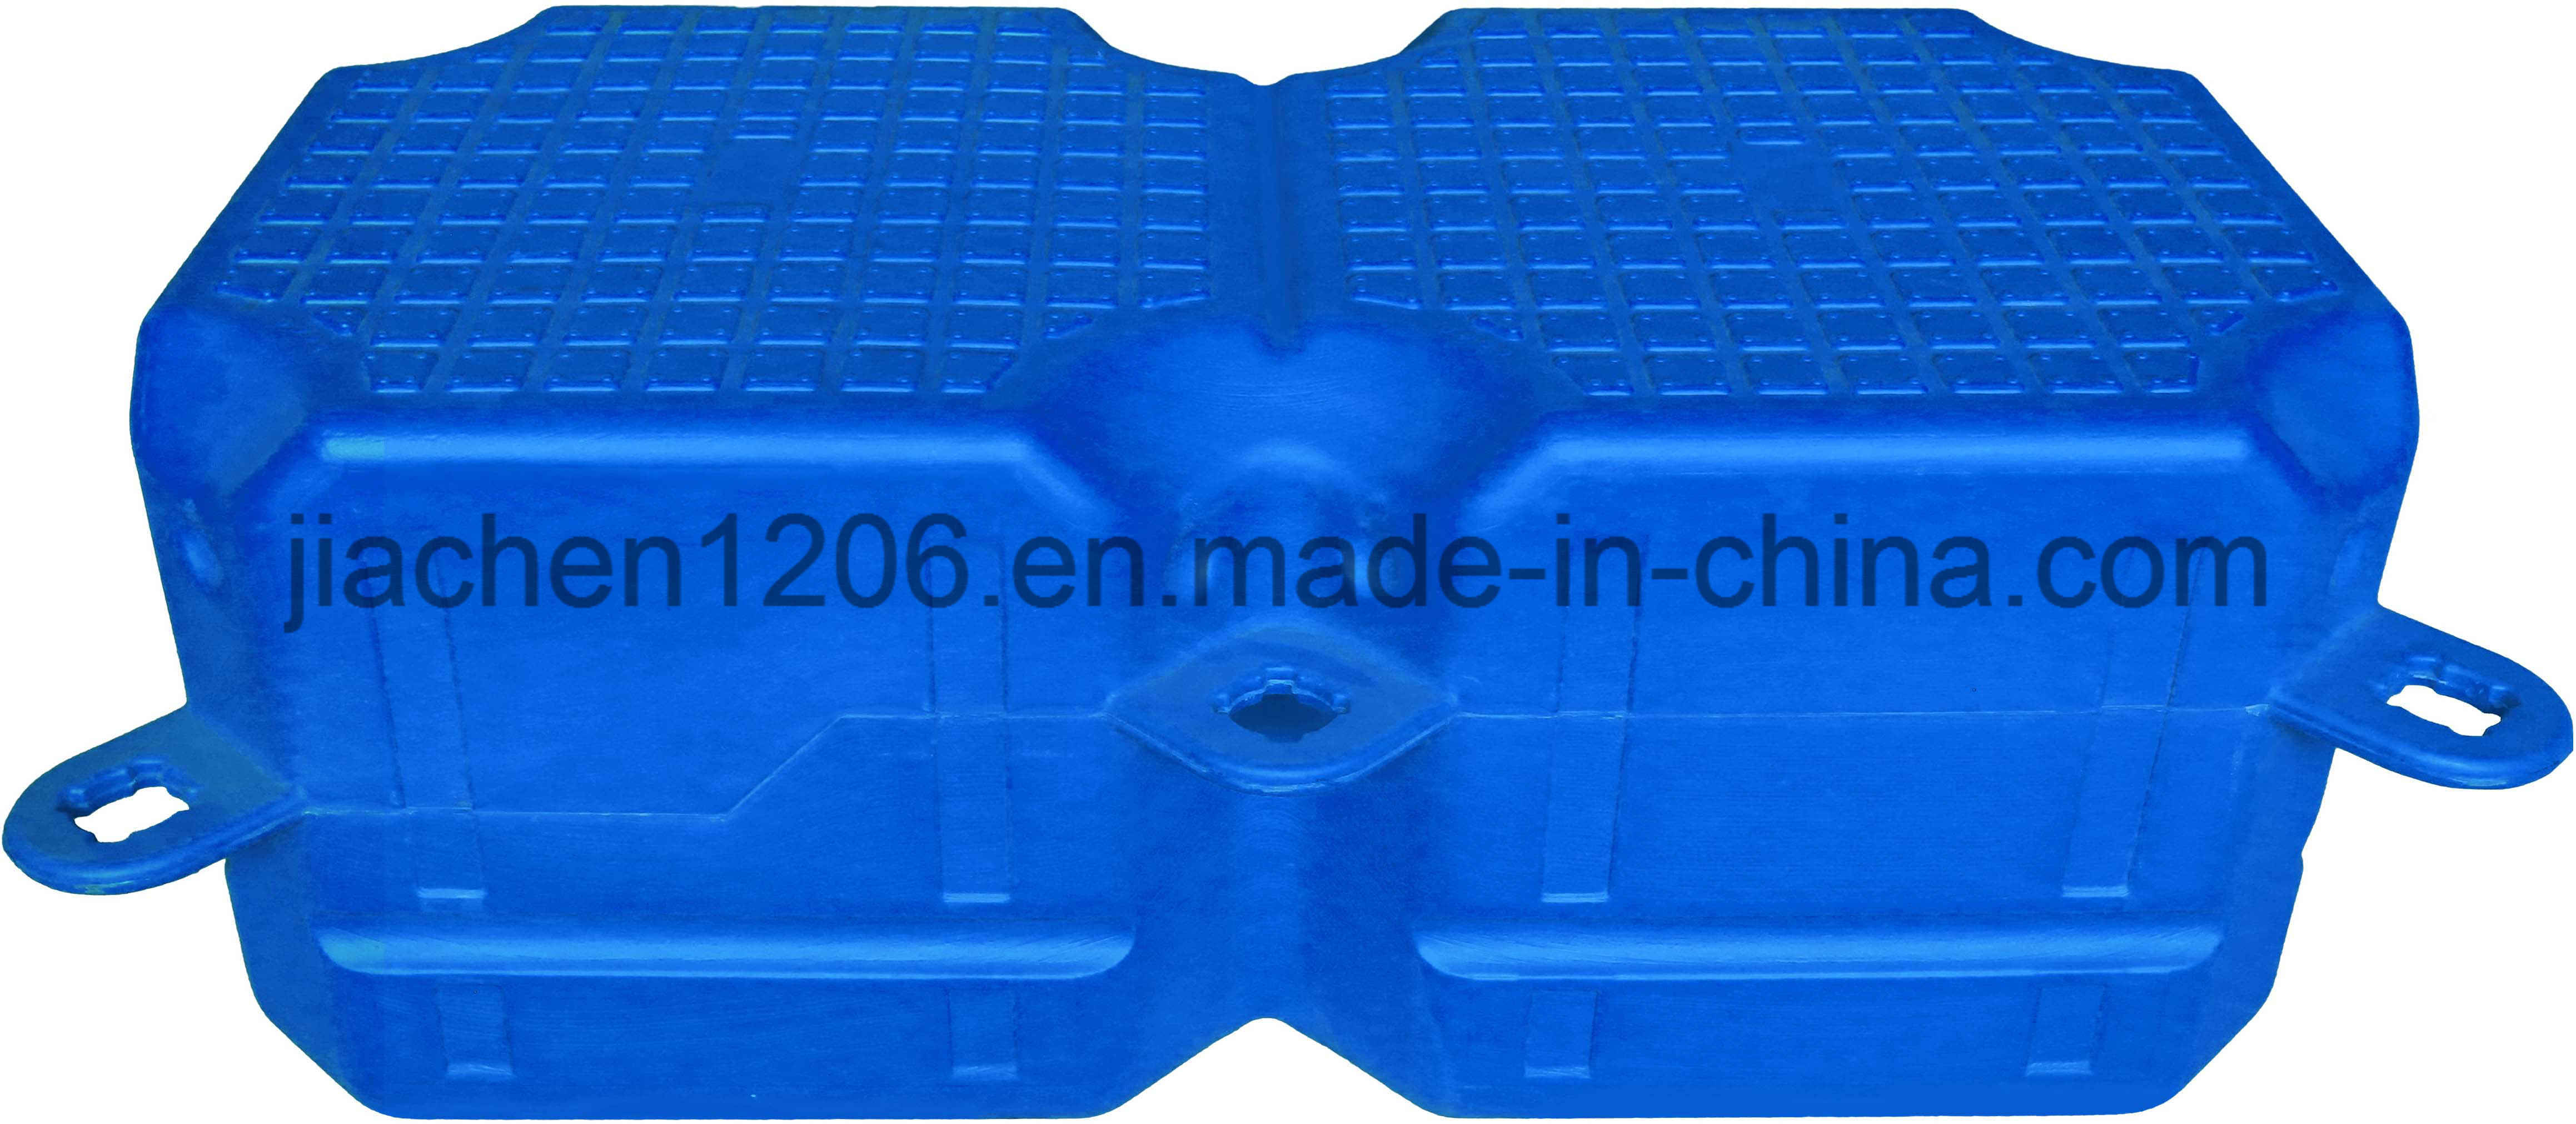 Hmwhdpe Anti Ultraviolet Double Pontoon Float Dock for Boat